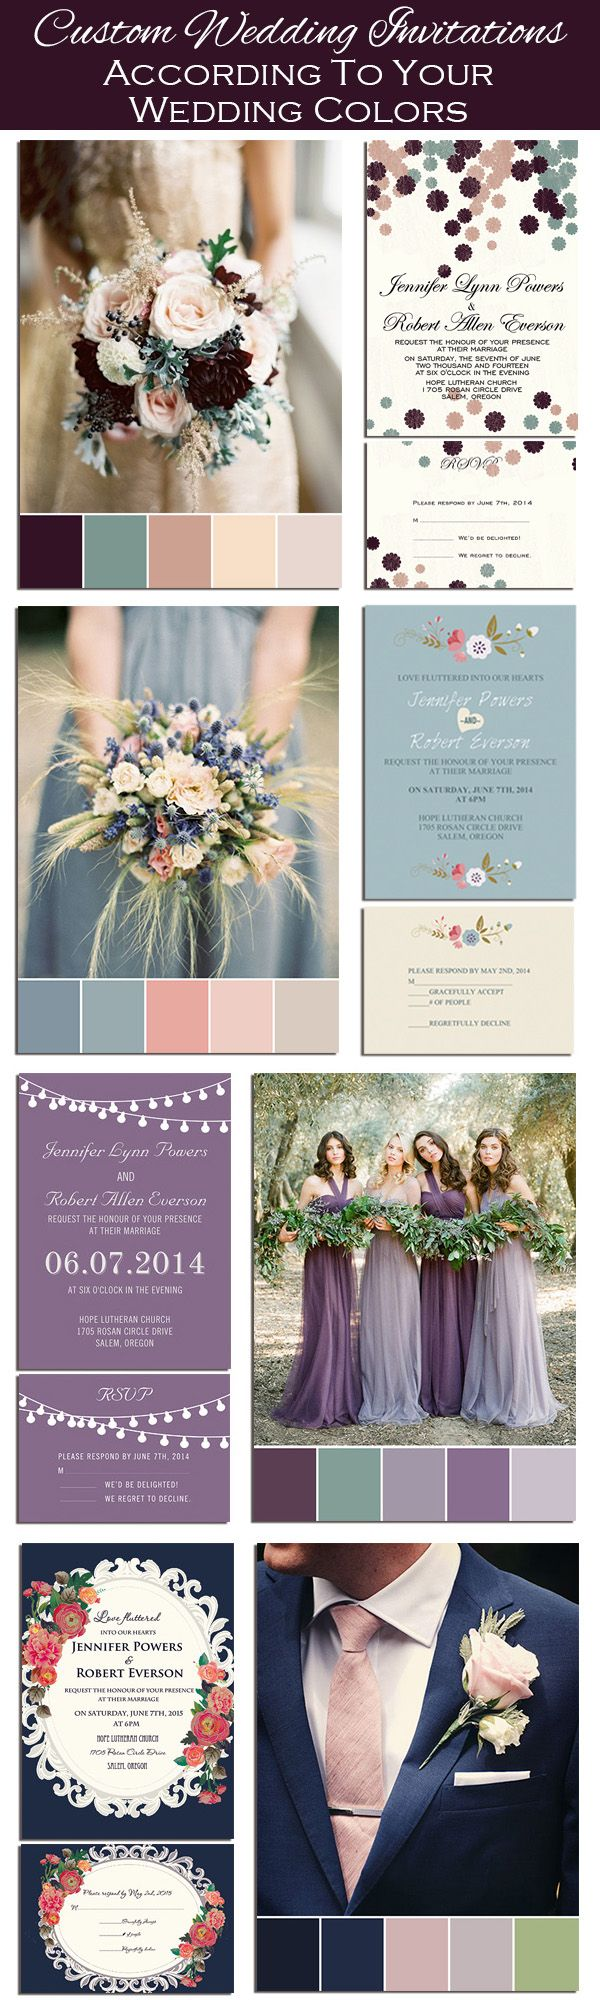 Custom DIY Wedding Invitations According to Your Wedding Colors